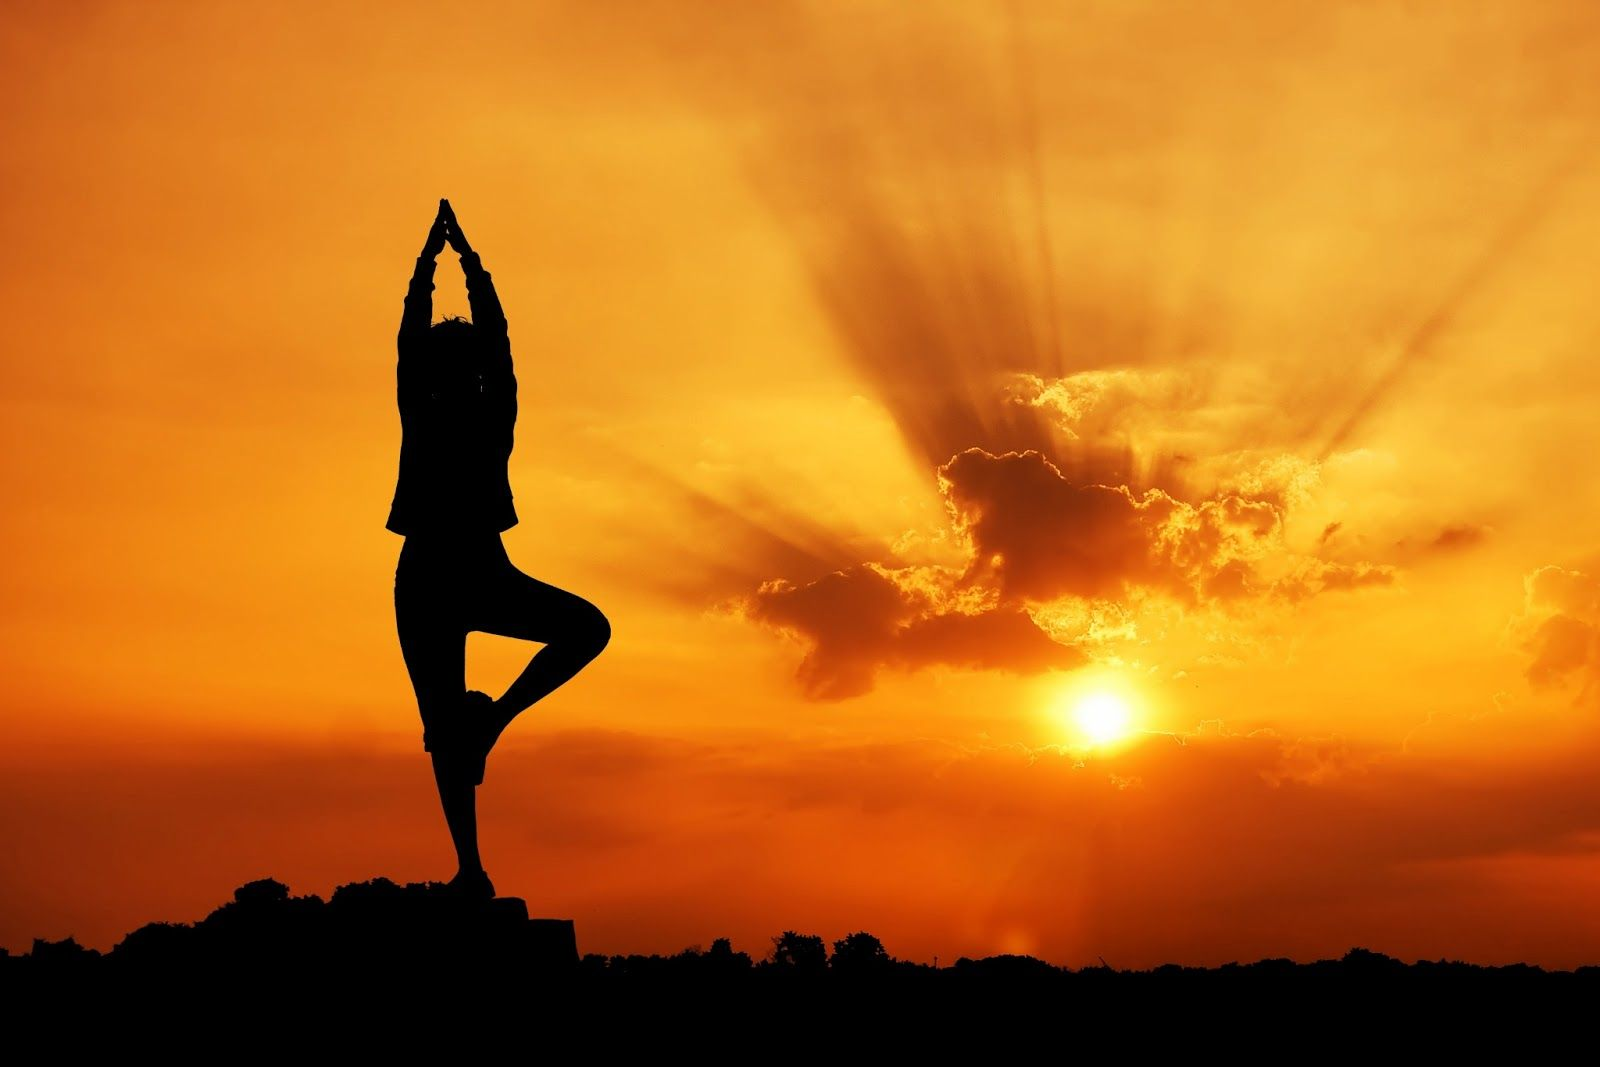 Yoga Hd Wallpapers Hd Wallpapers Backgrounds Of Your Choice Yoga Benefits Yoga Practice Yoga Alliance